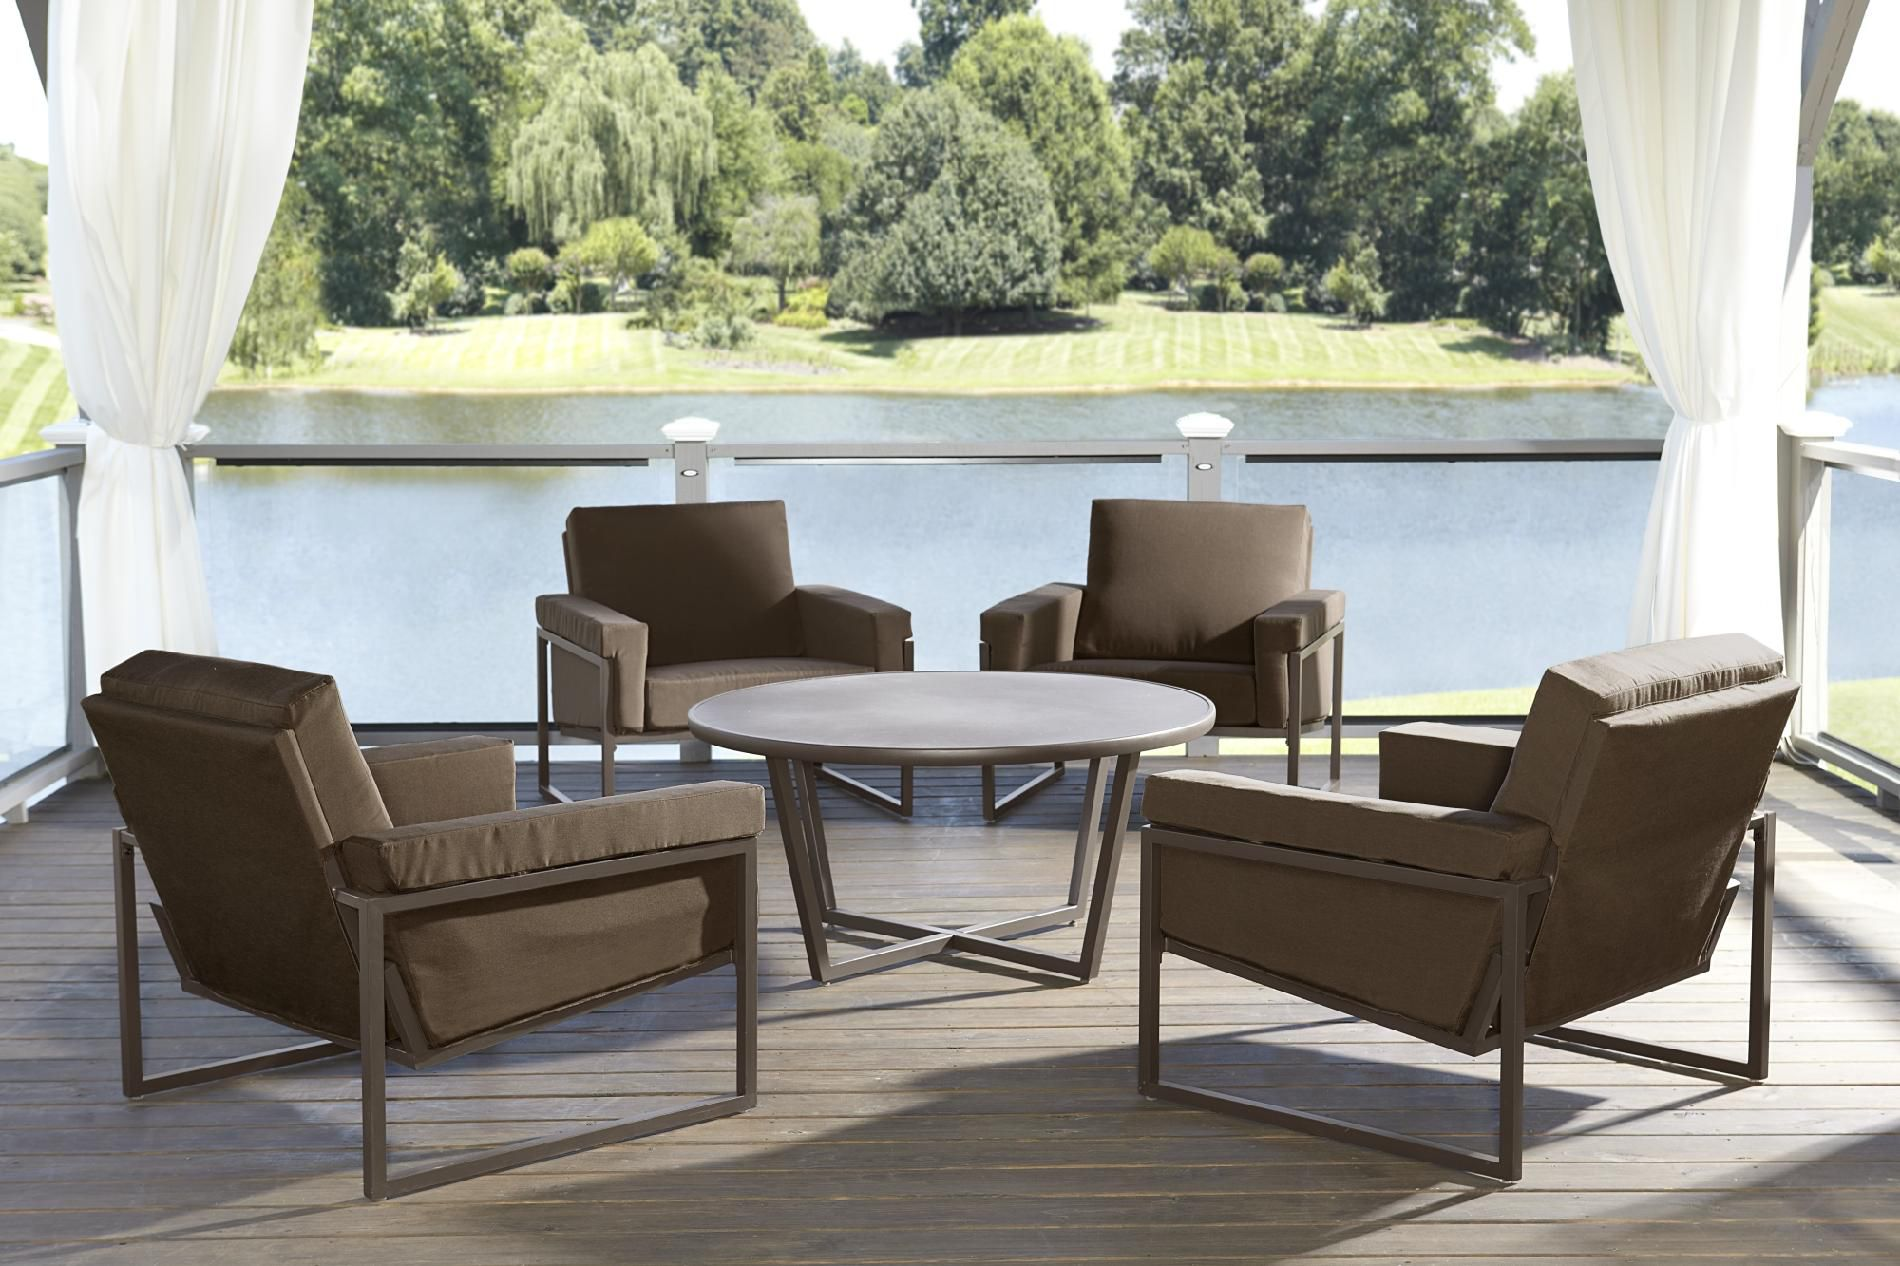 Grand Resort Batten 5pc Chat Set